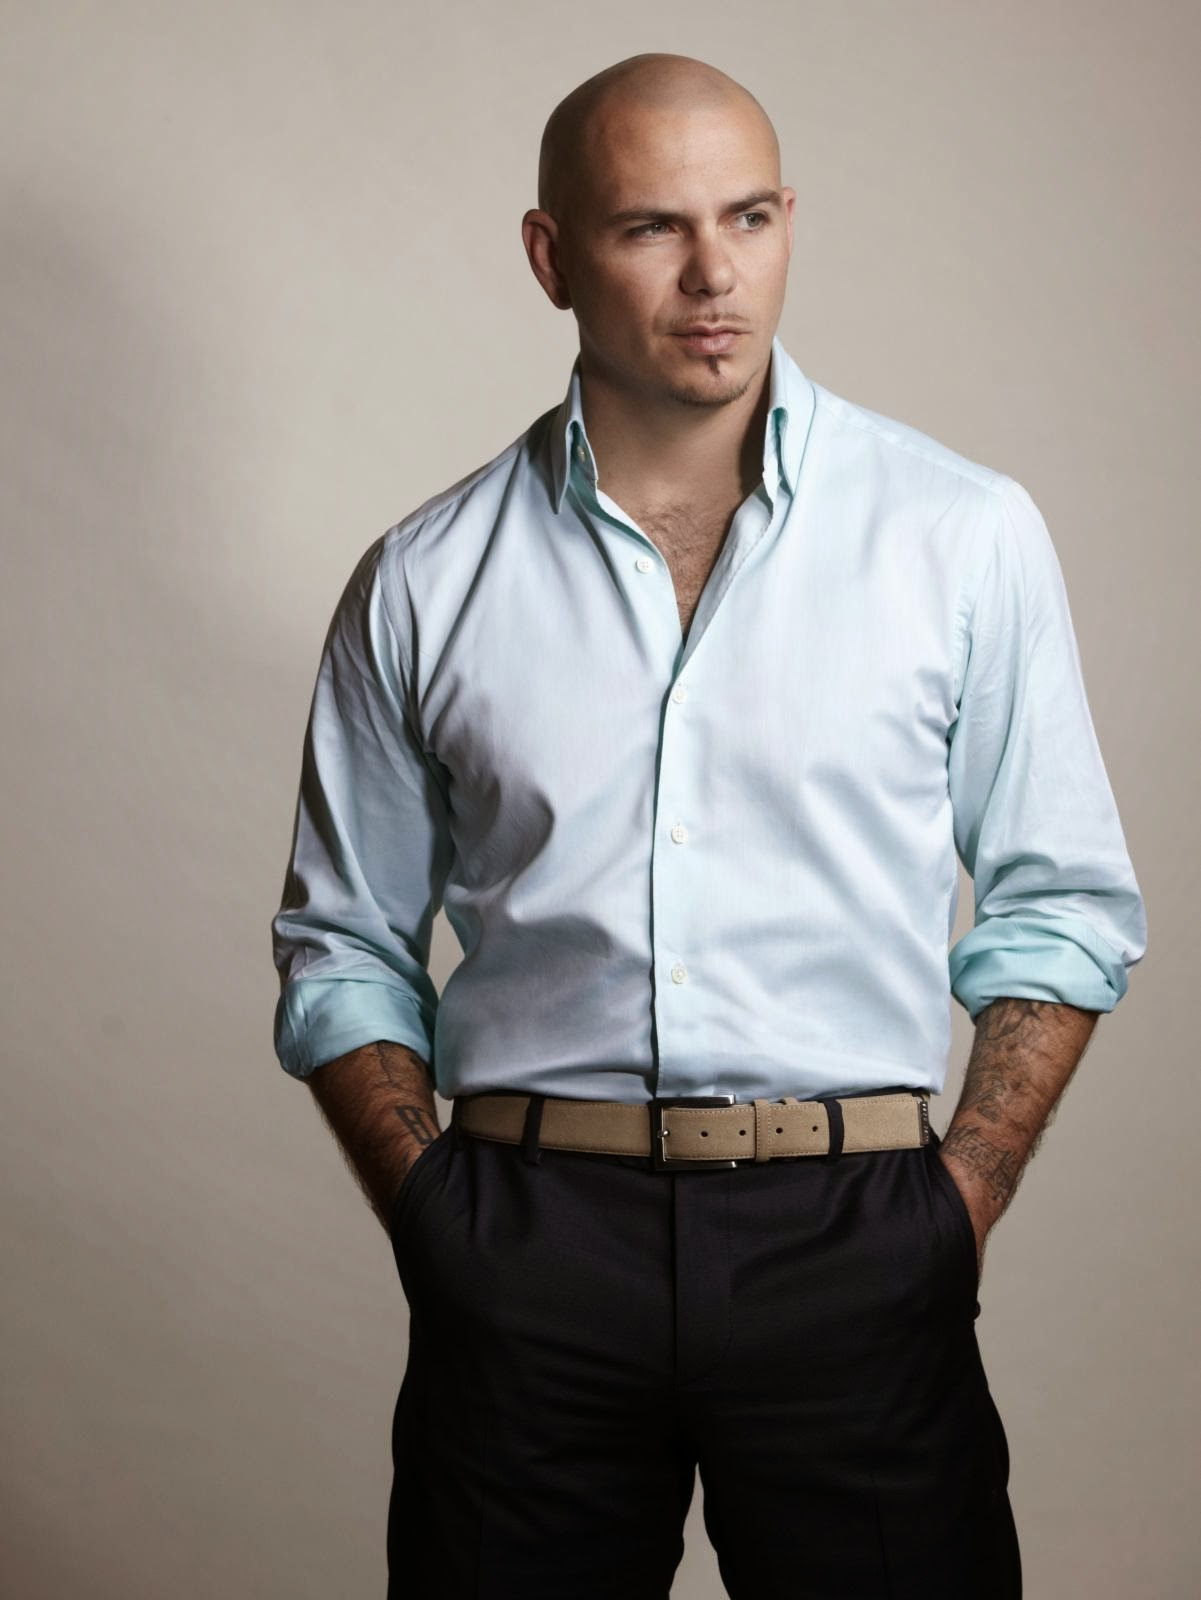 fotos de pitbull 10